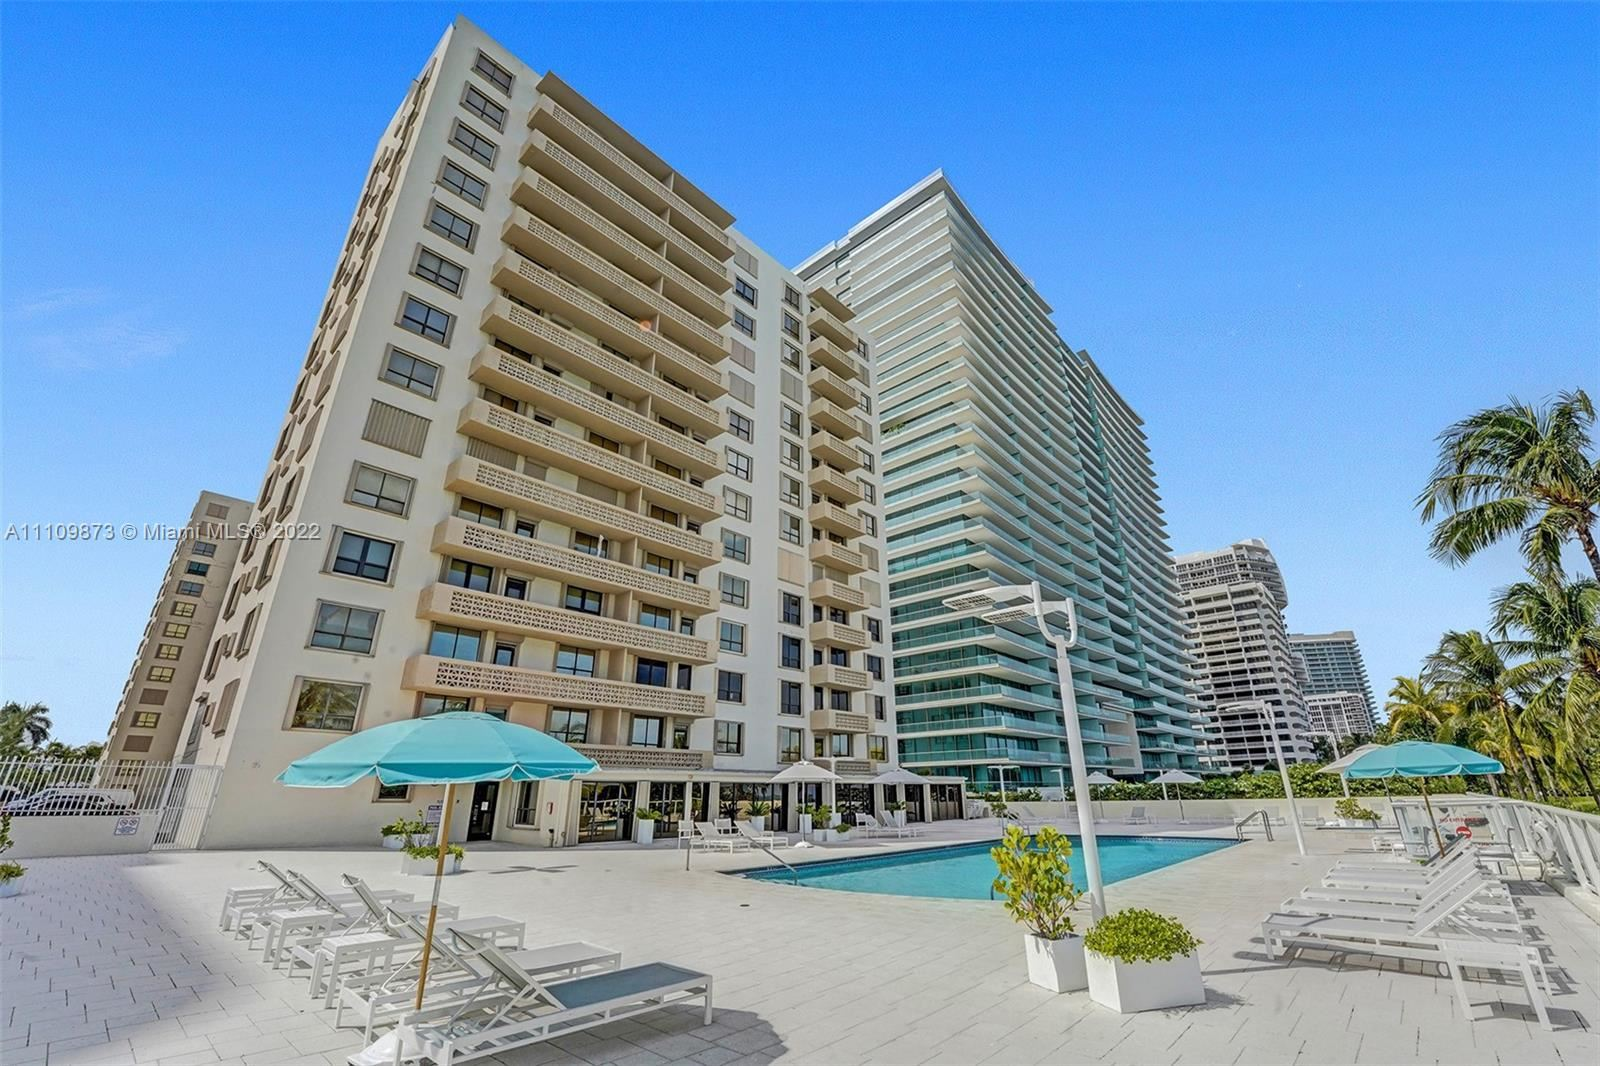 Photo of 10185 Collins Ave #307, Bal Harbour, FL 33154 (MLS # A11109873)